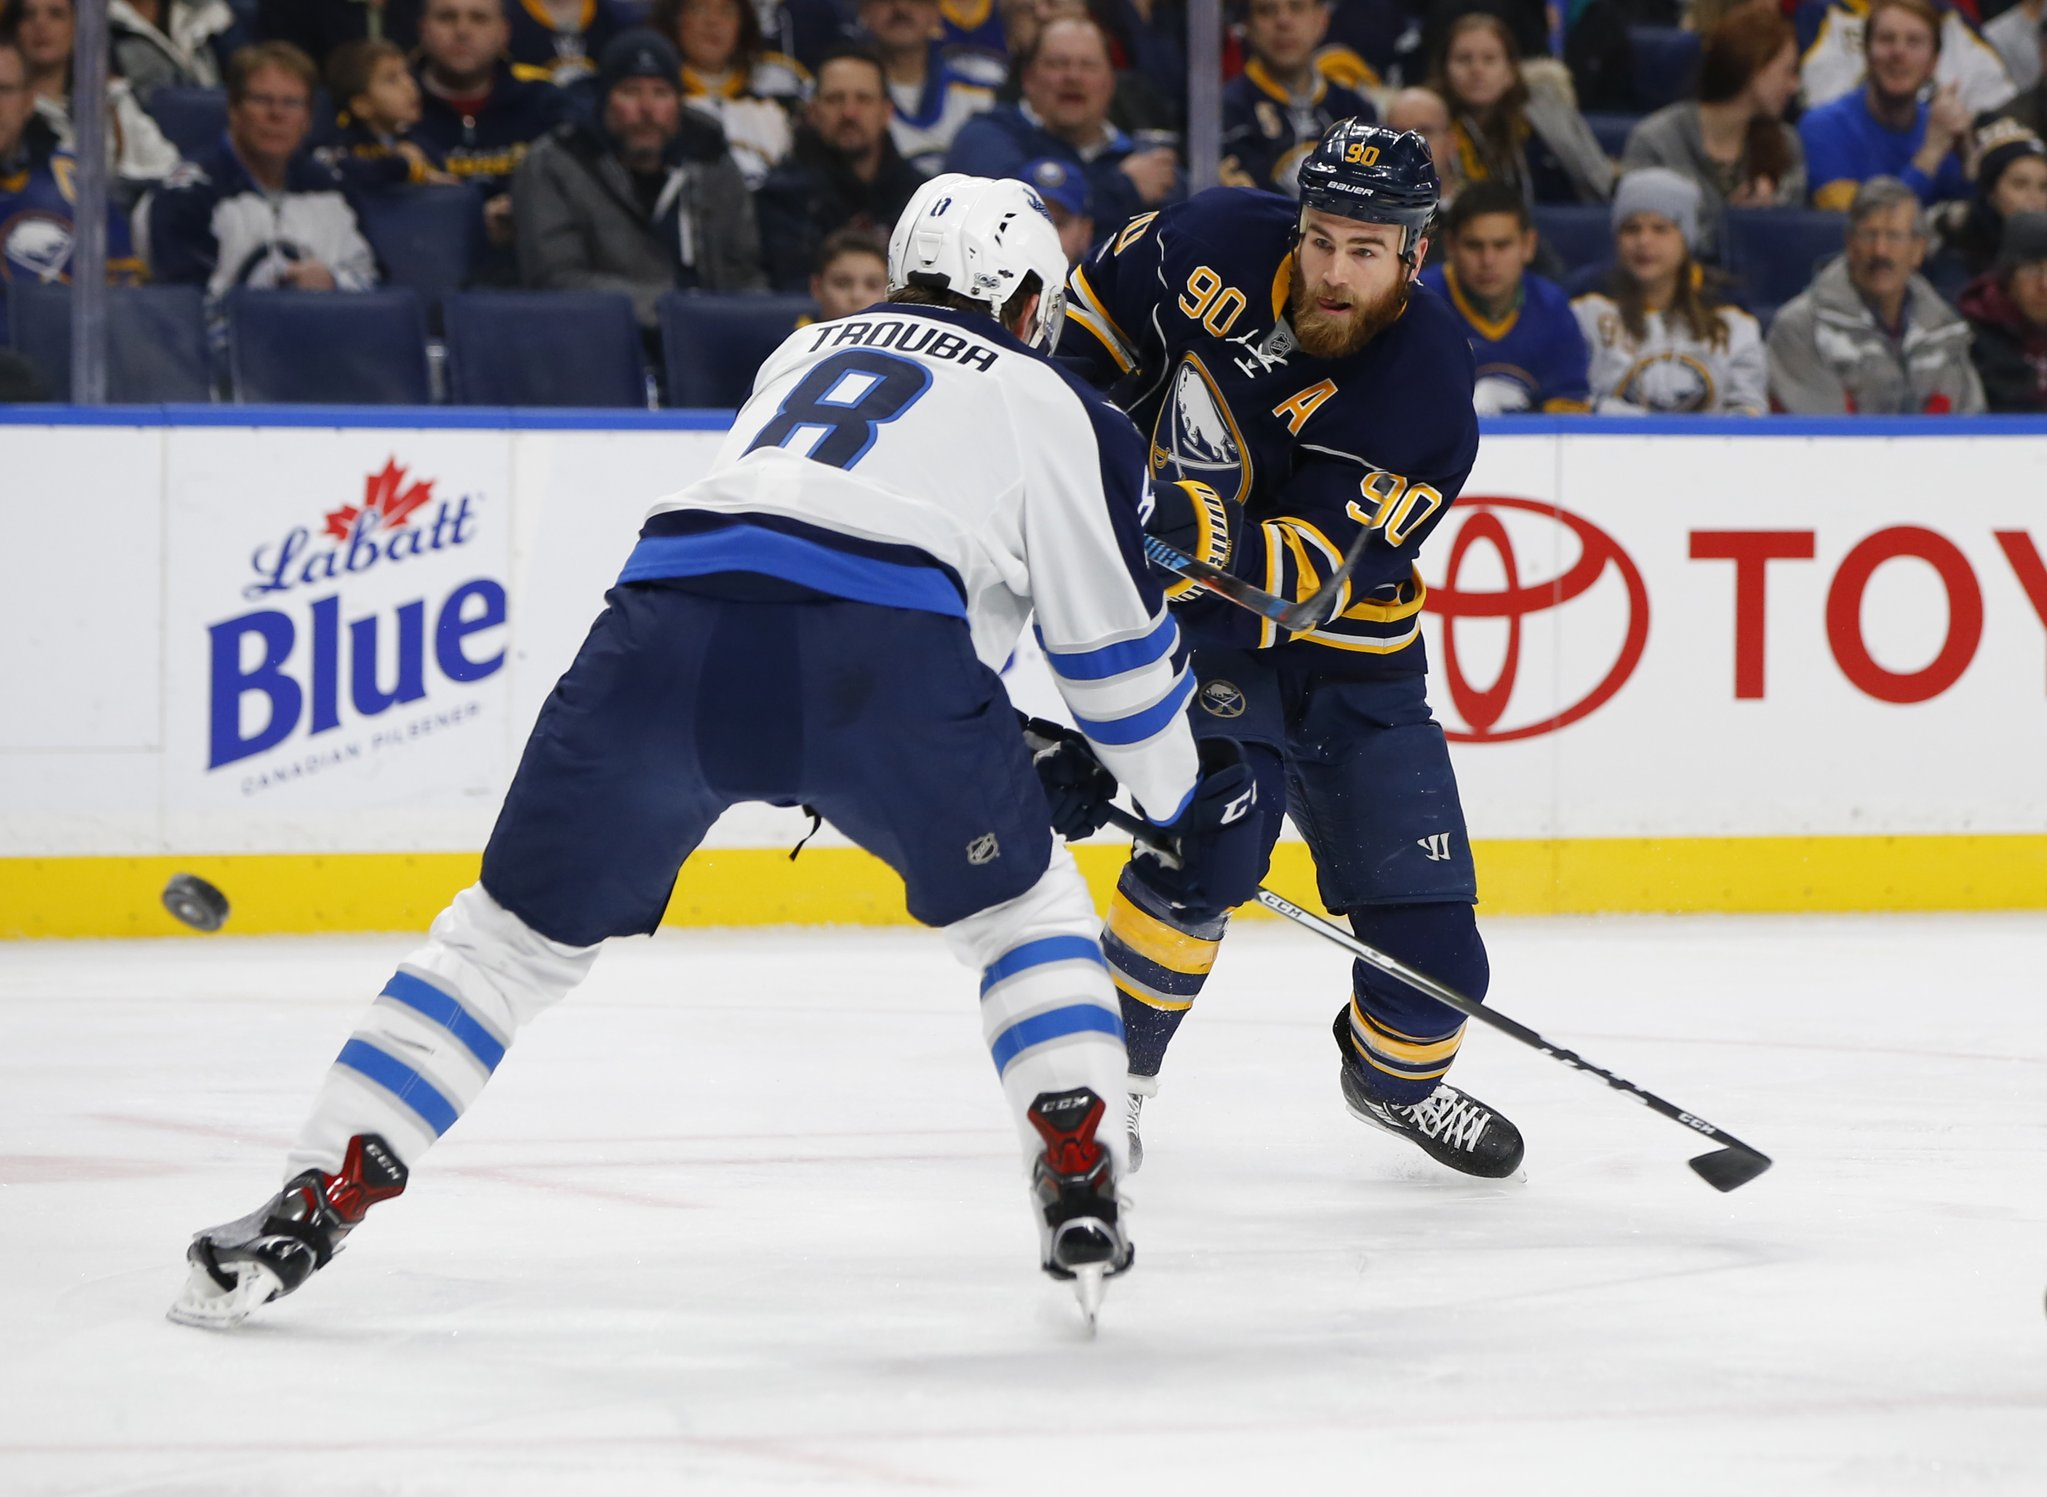 a4199b28d5b Quick hits: Sabres 4, Jets 3 – The Buffalo News